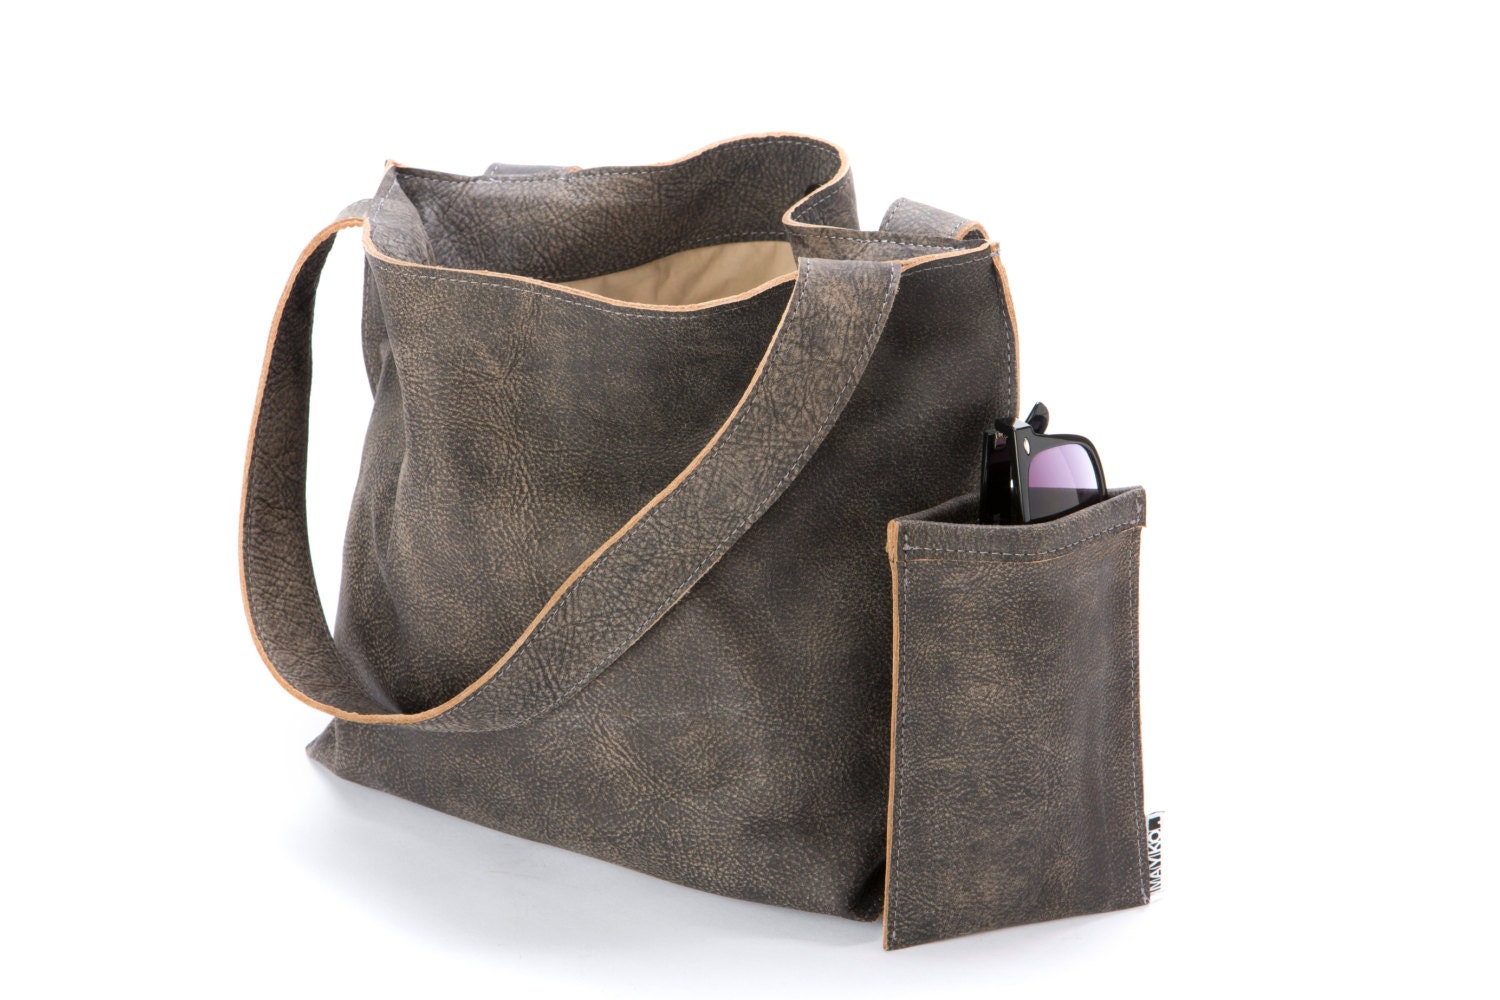 Distressed Gray Leather Tote Oversized Leather Tote with